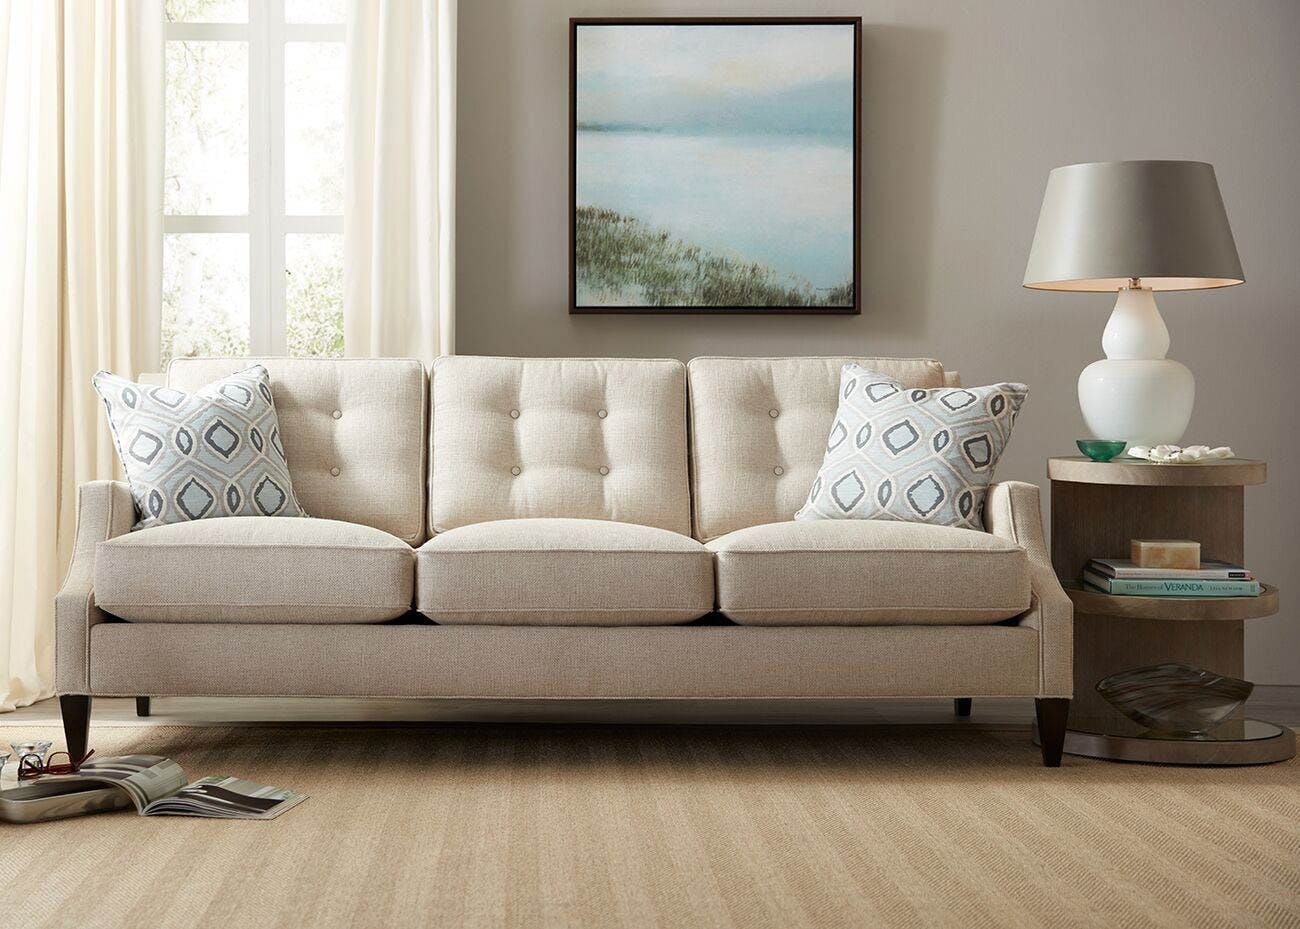 Updated Classics & Trendy Transitional Home Furnishings